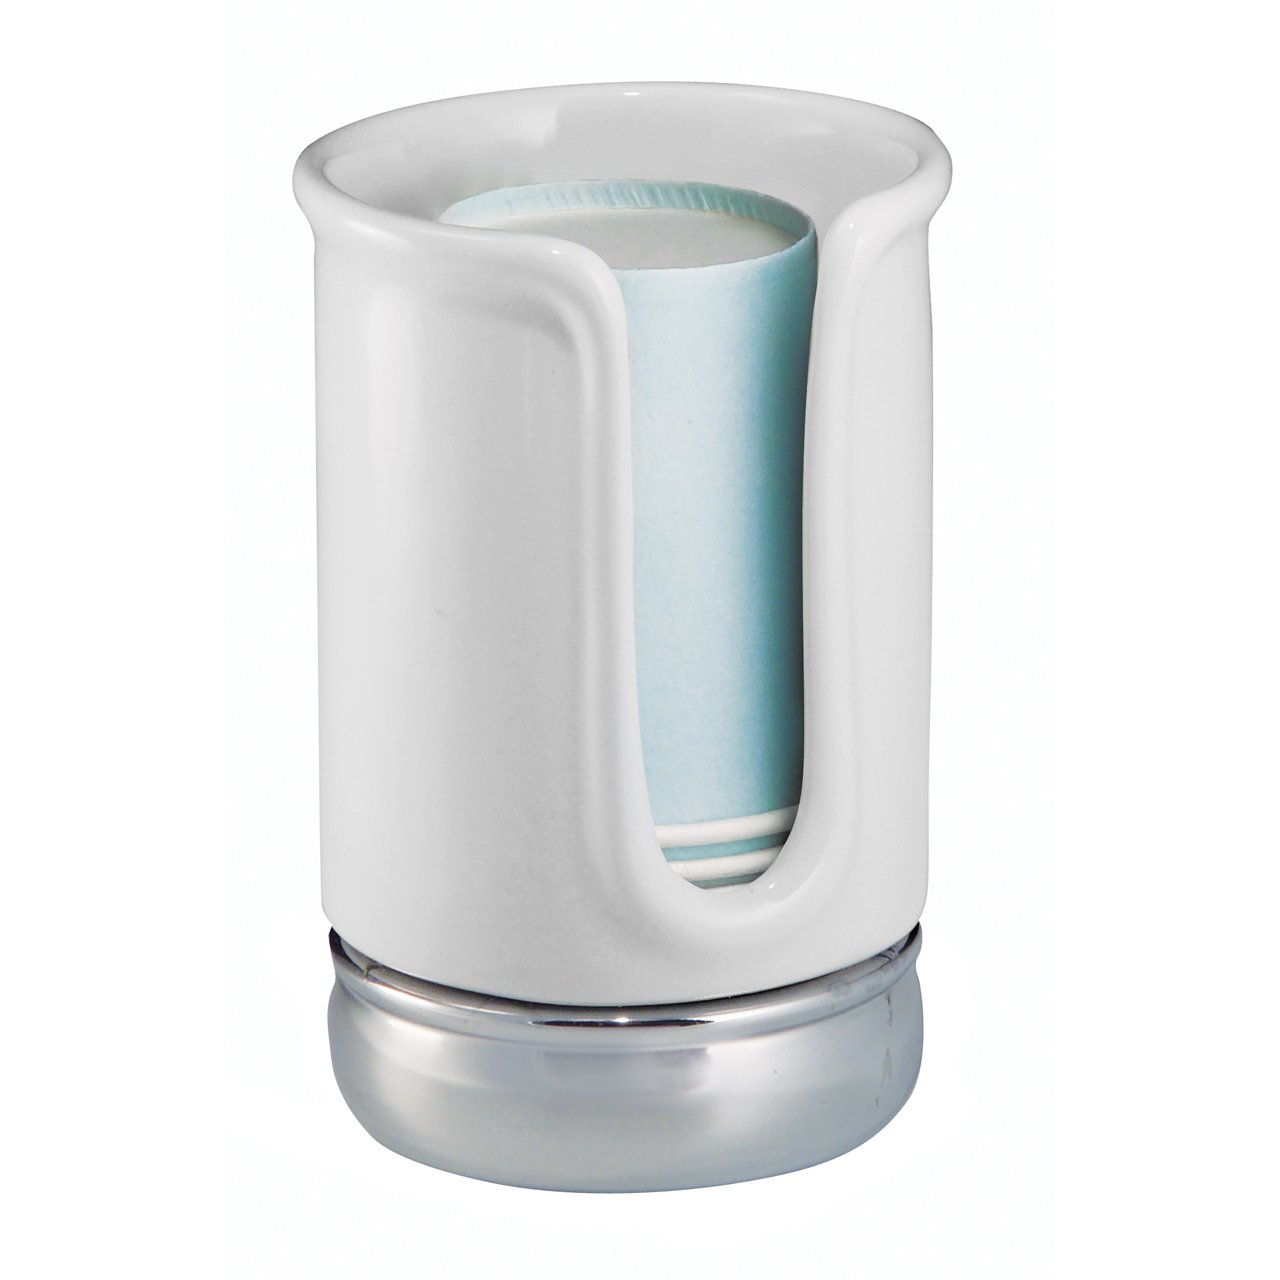 Interdesign york bath collection disposable cup dispenser for Inter designs